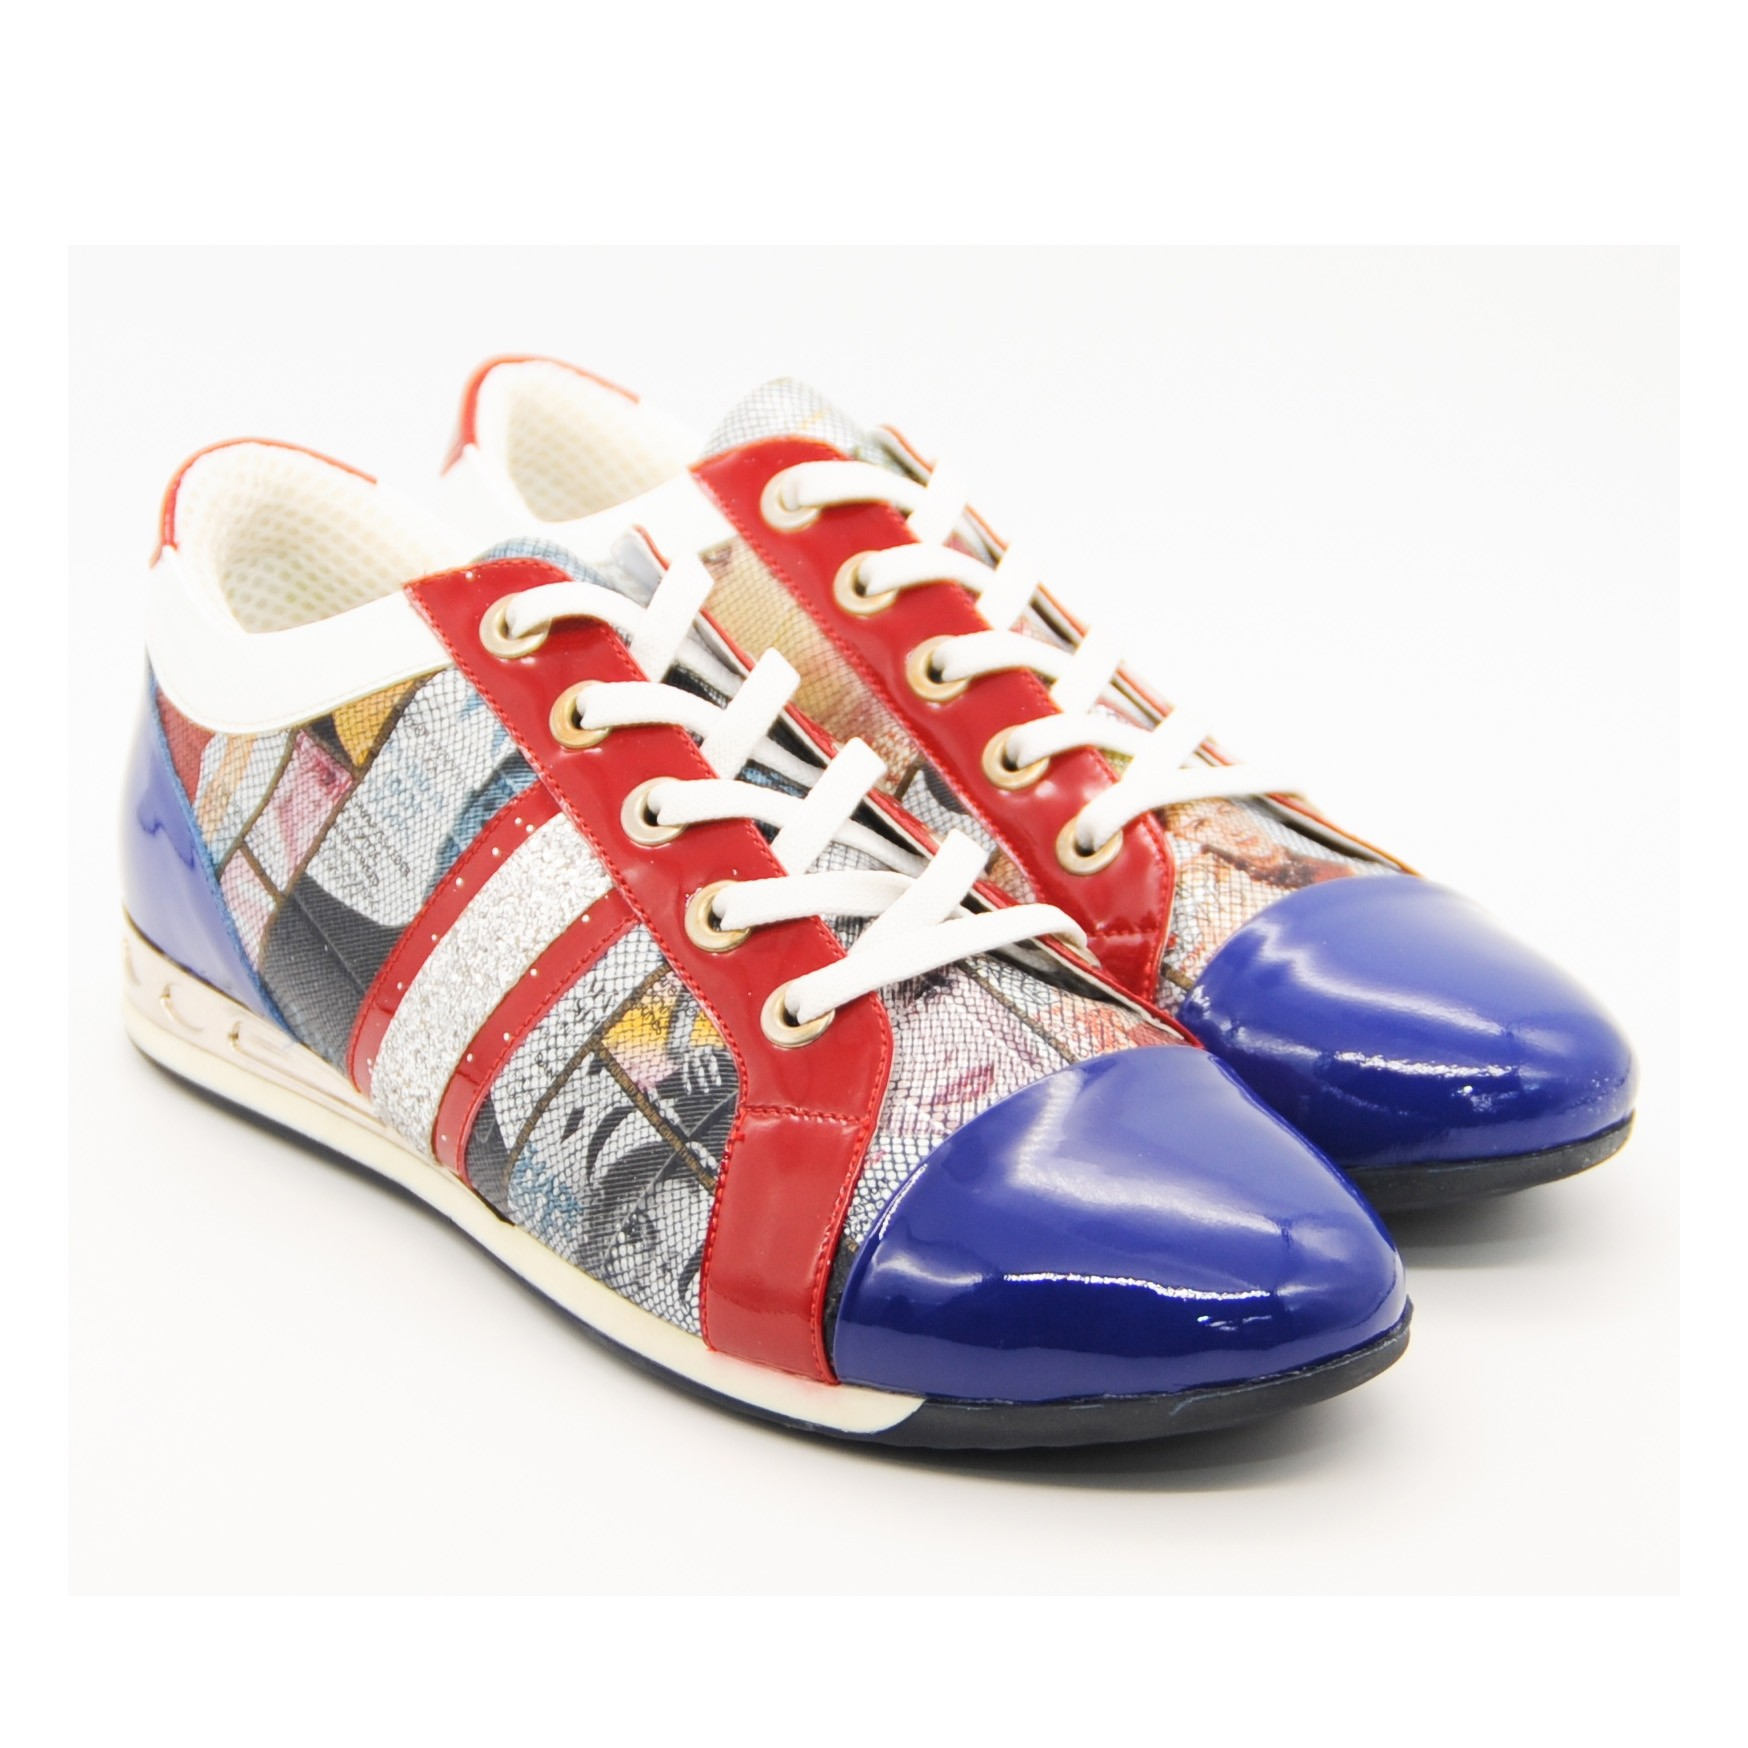 Stylishly Vogue Multi Coloured Patterned Leather Pumps with Lace Tie Ups